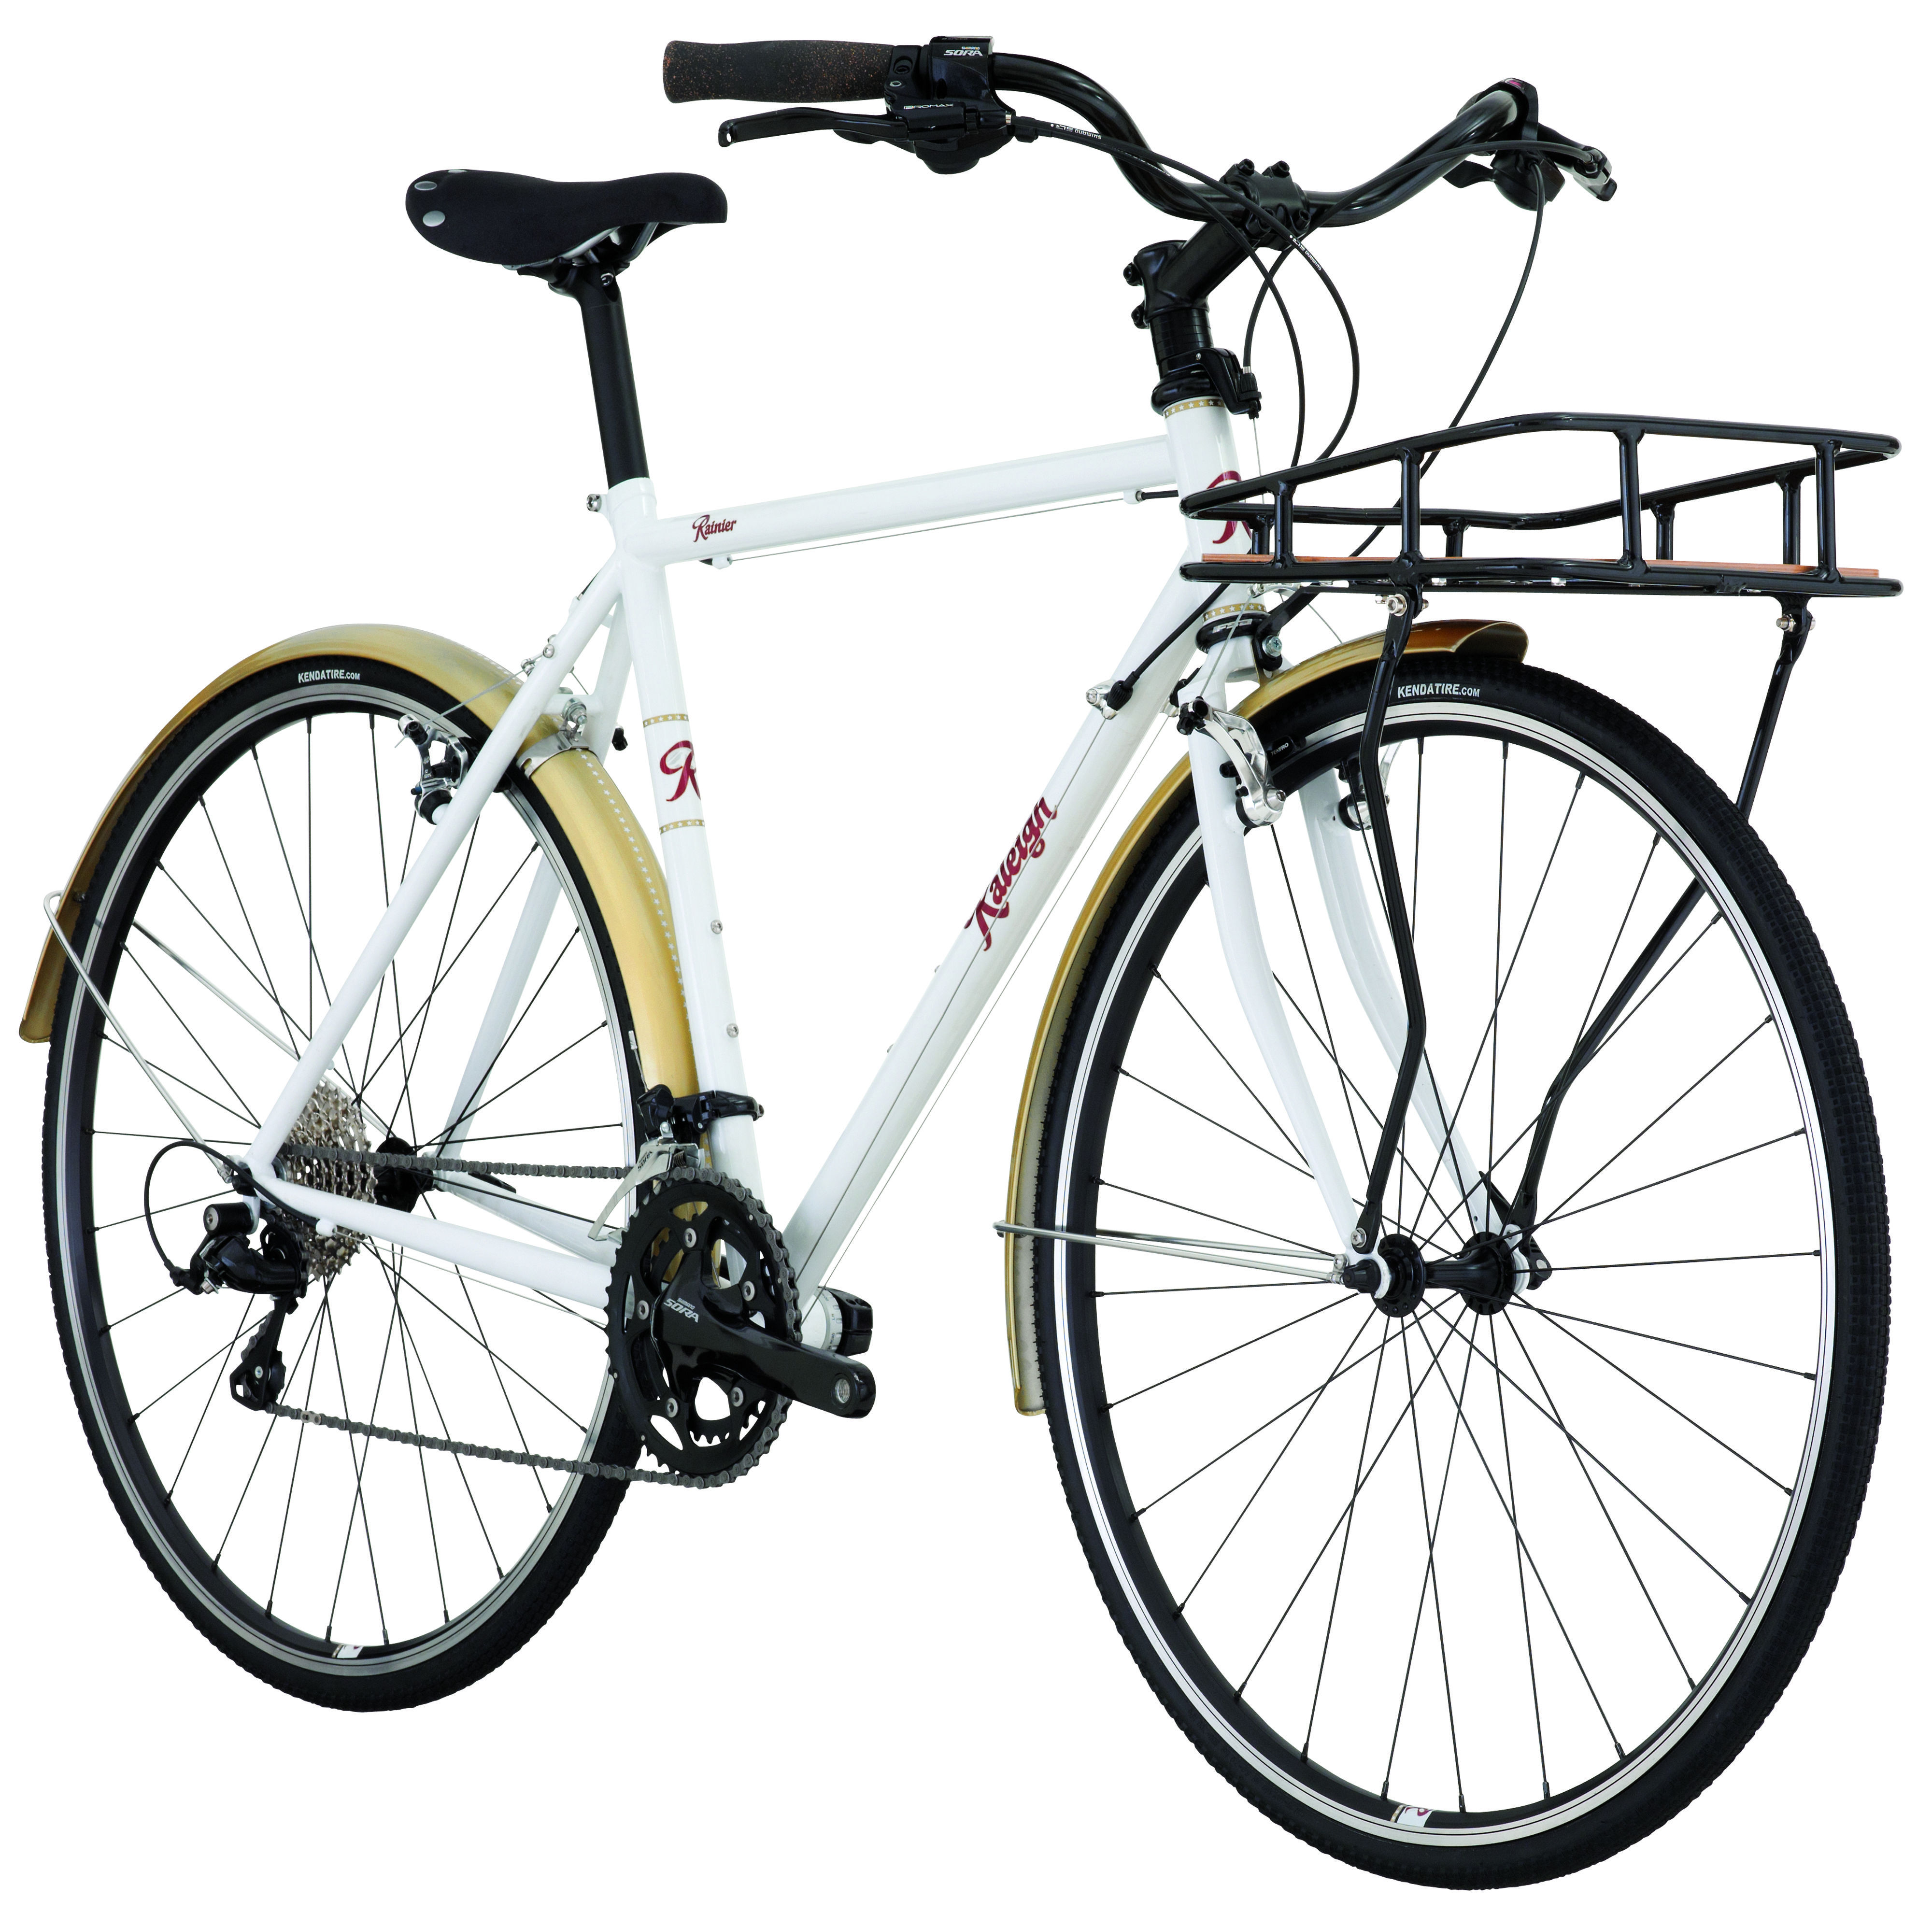 2384d31532e Perfect bike for the city in Rainier Beer edition. Comes with twelve pack  rack! Raleigh Bikes